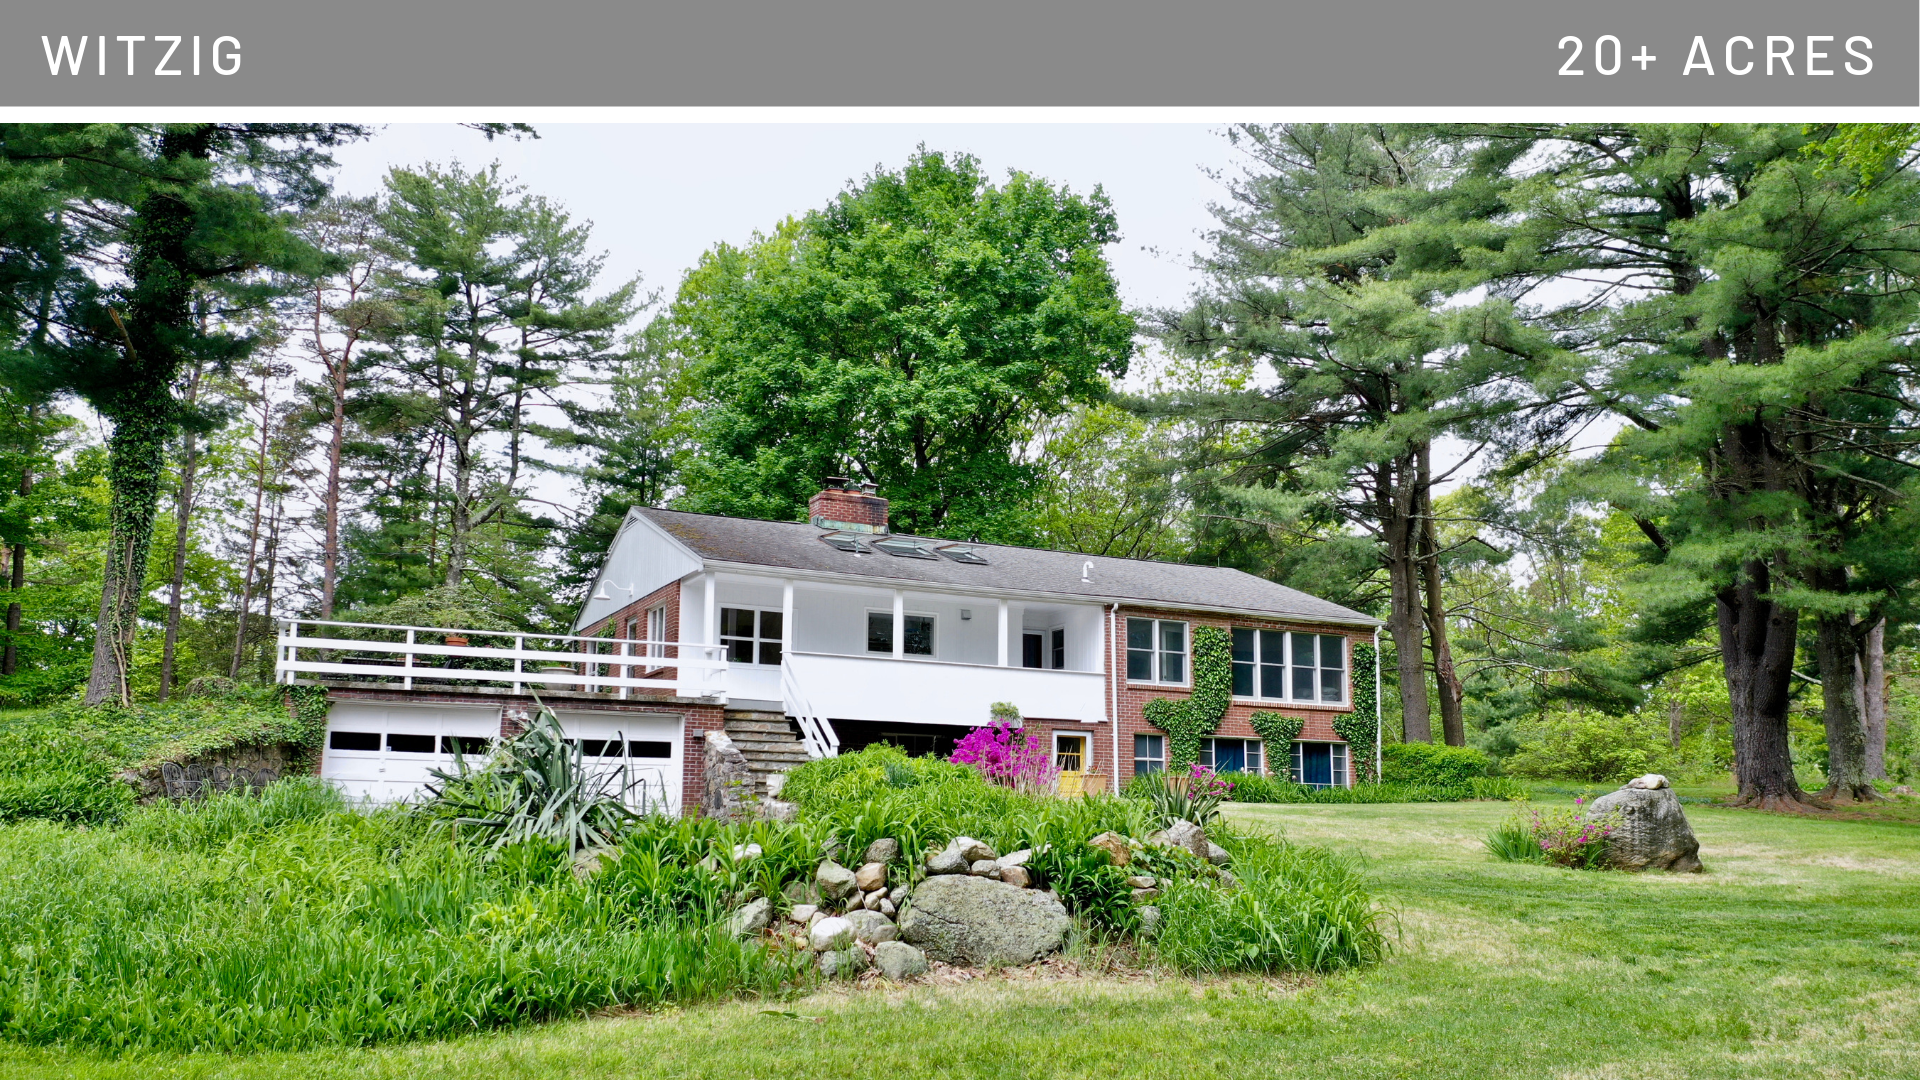 WITZIG house for sale bethel ct